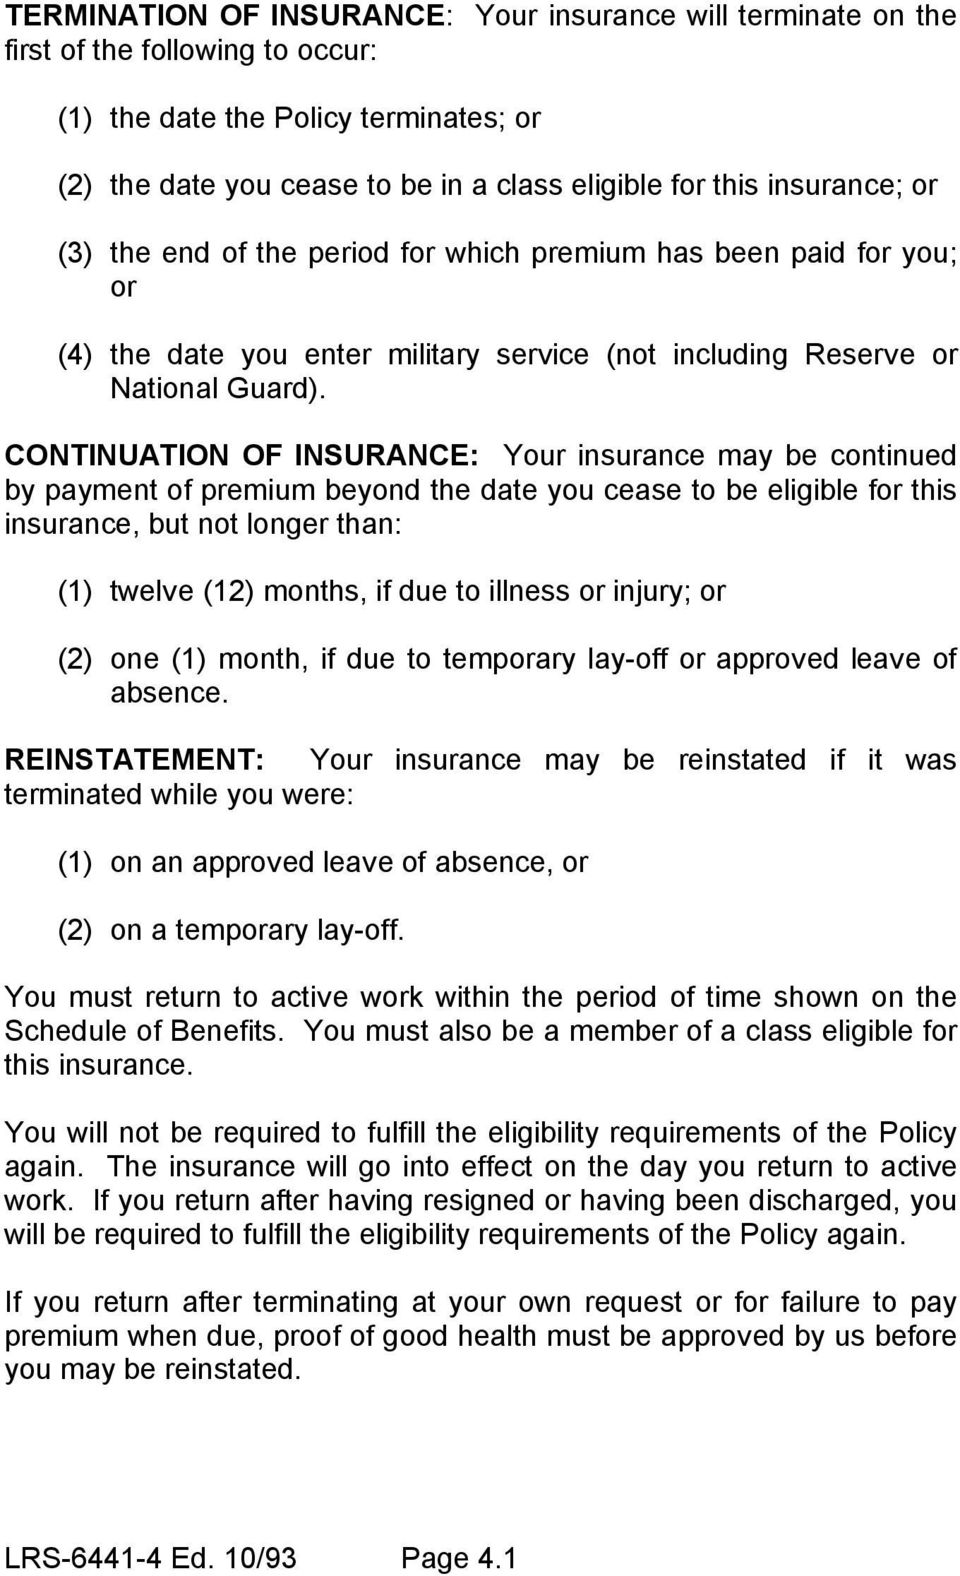 CONTINUATION OF INSURANCE: Your insurance may be continued by payment of premium beyond the date you cease to be eligible for this insurance, but not longer than: (1) twelve (12) months, if due to